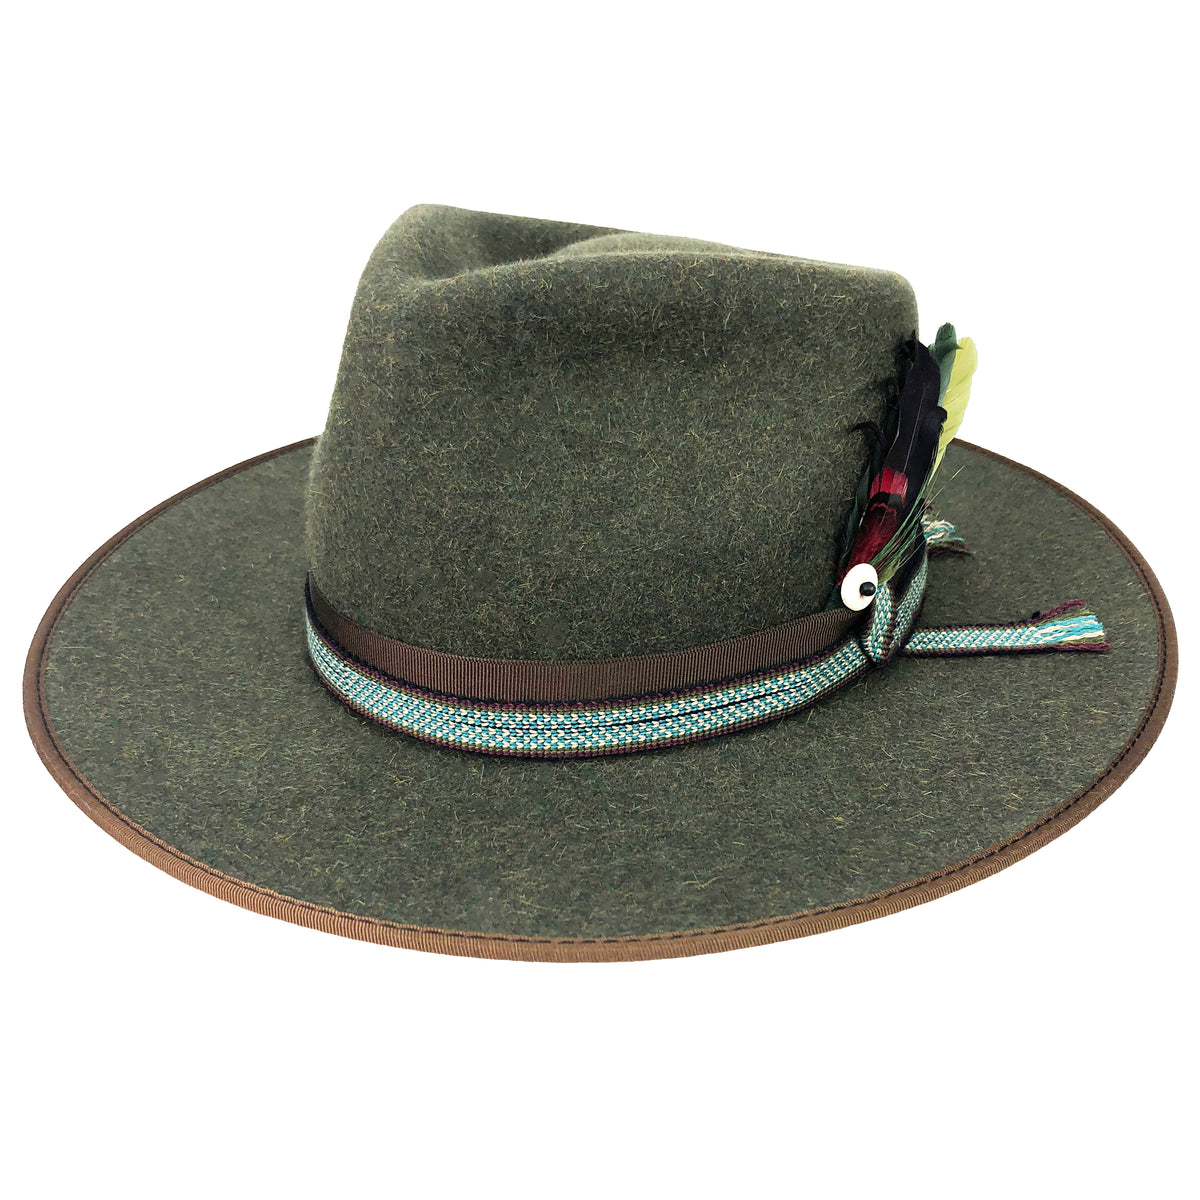 hatWRKS original, made with dress weight fur felt and has a teardrop fedora crown with a bound brim